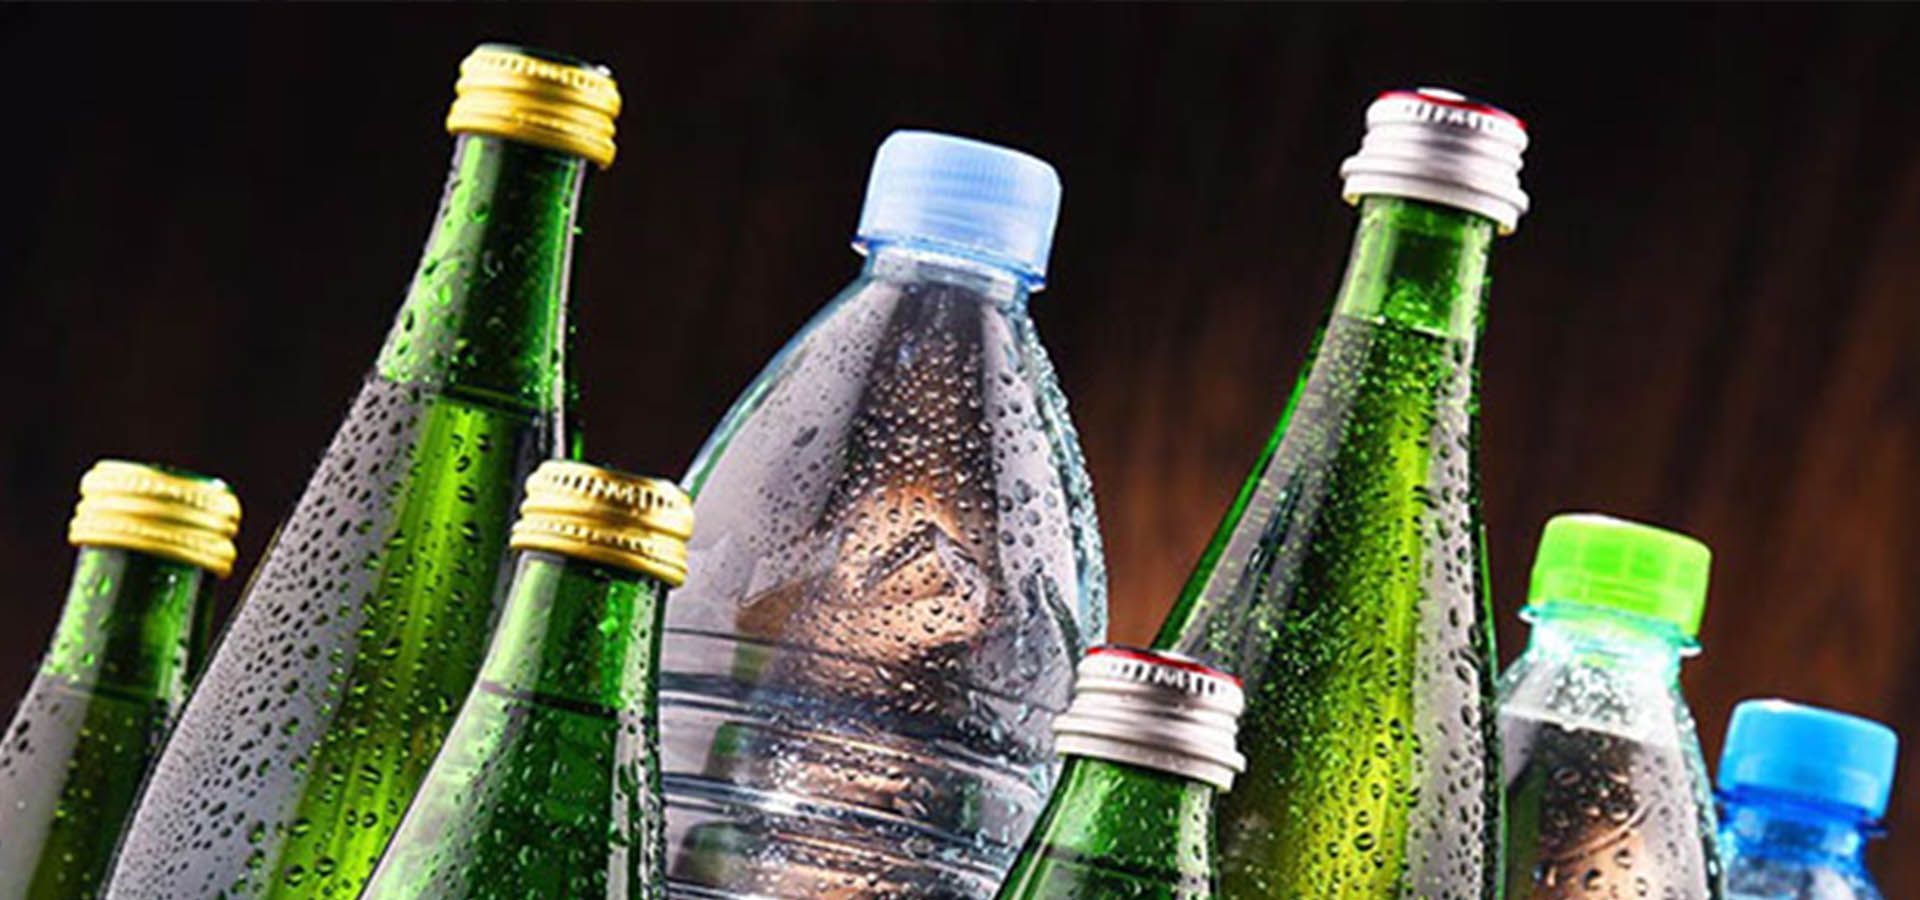 Cold beverage trends and the challenges